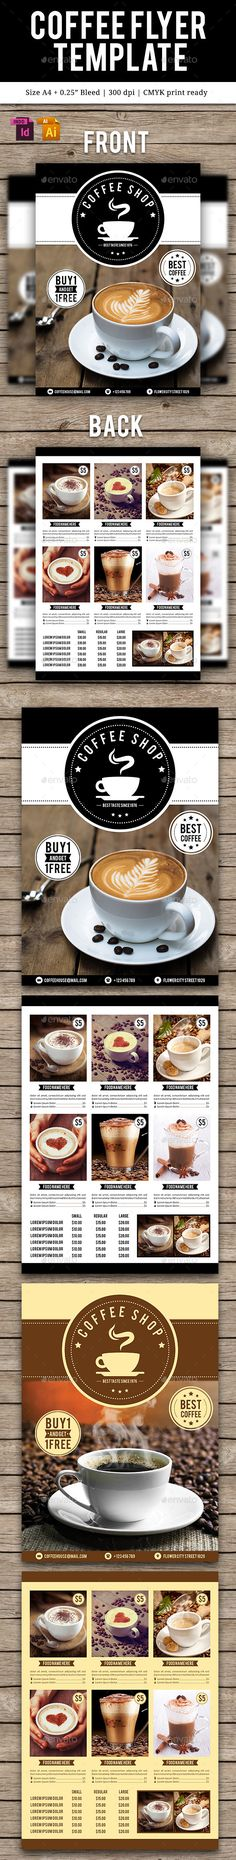 Coffee Flyer Template INDD, Vector AI. Download here: http://graphicriver.net/item/coffee-flyer-template-vol-2/15071271?ref=ksioks